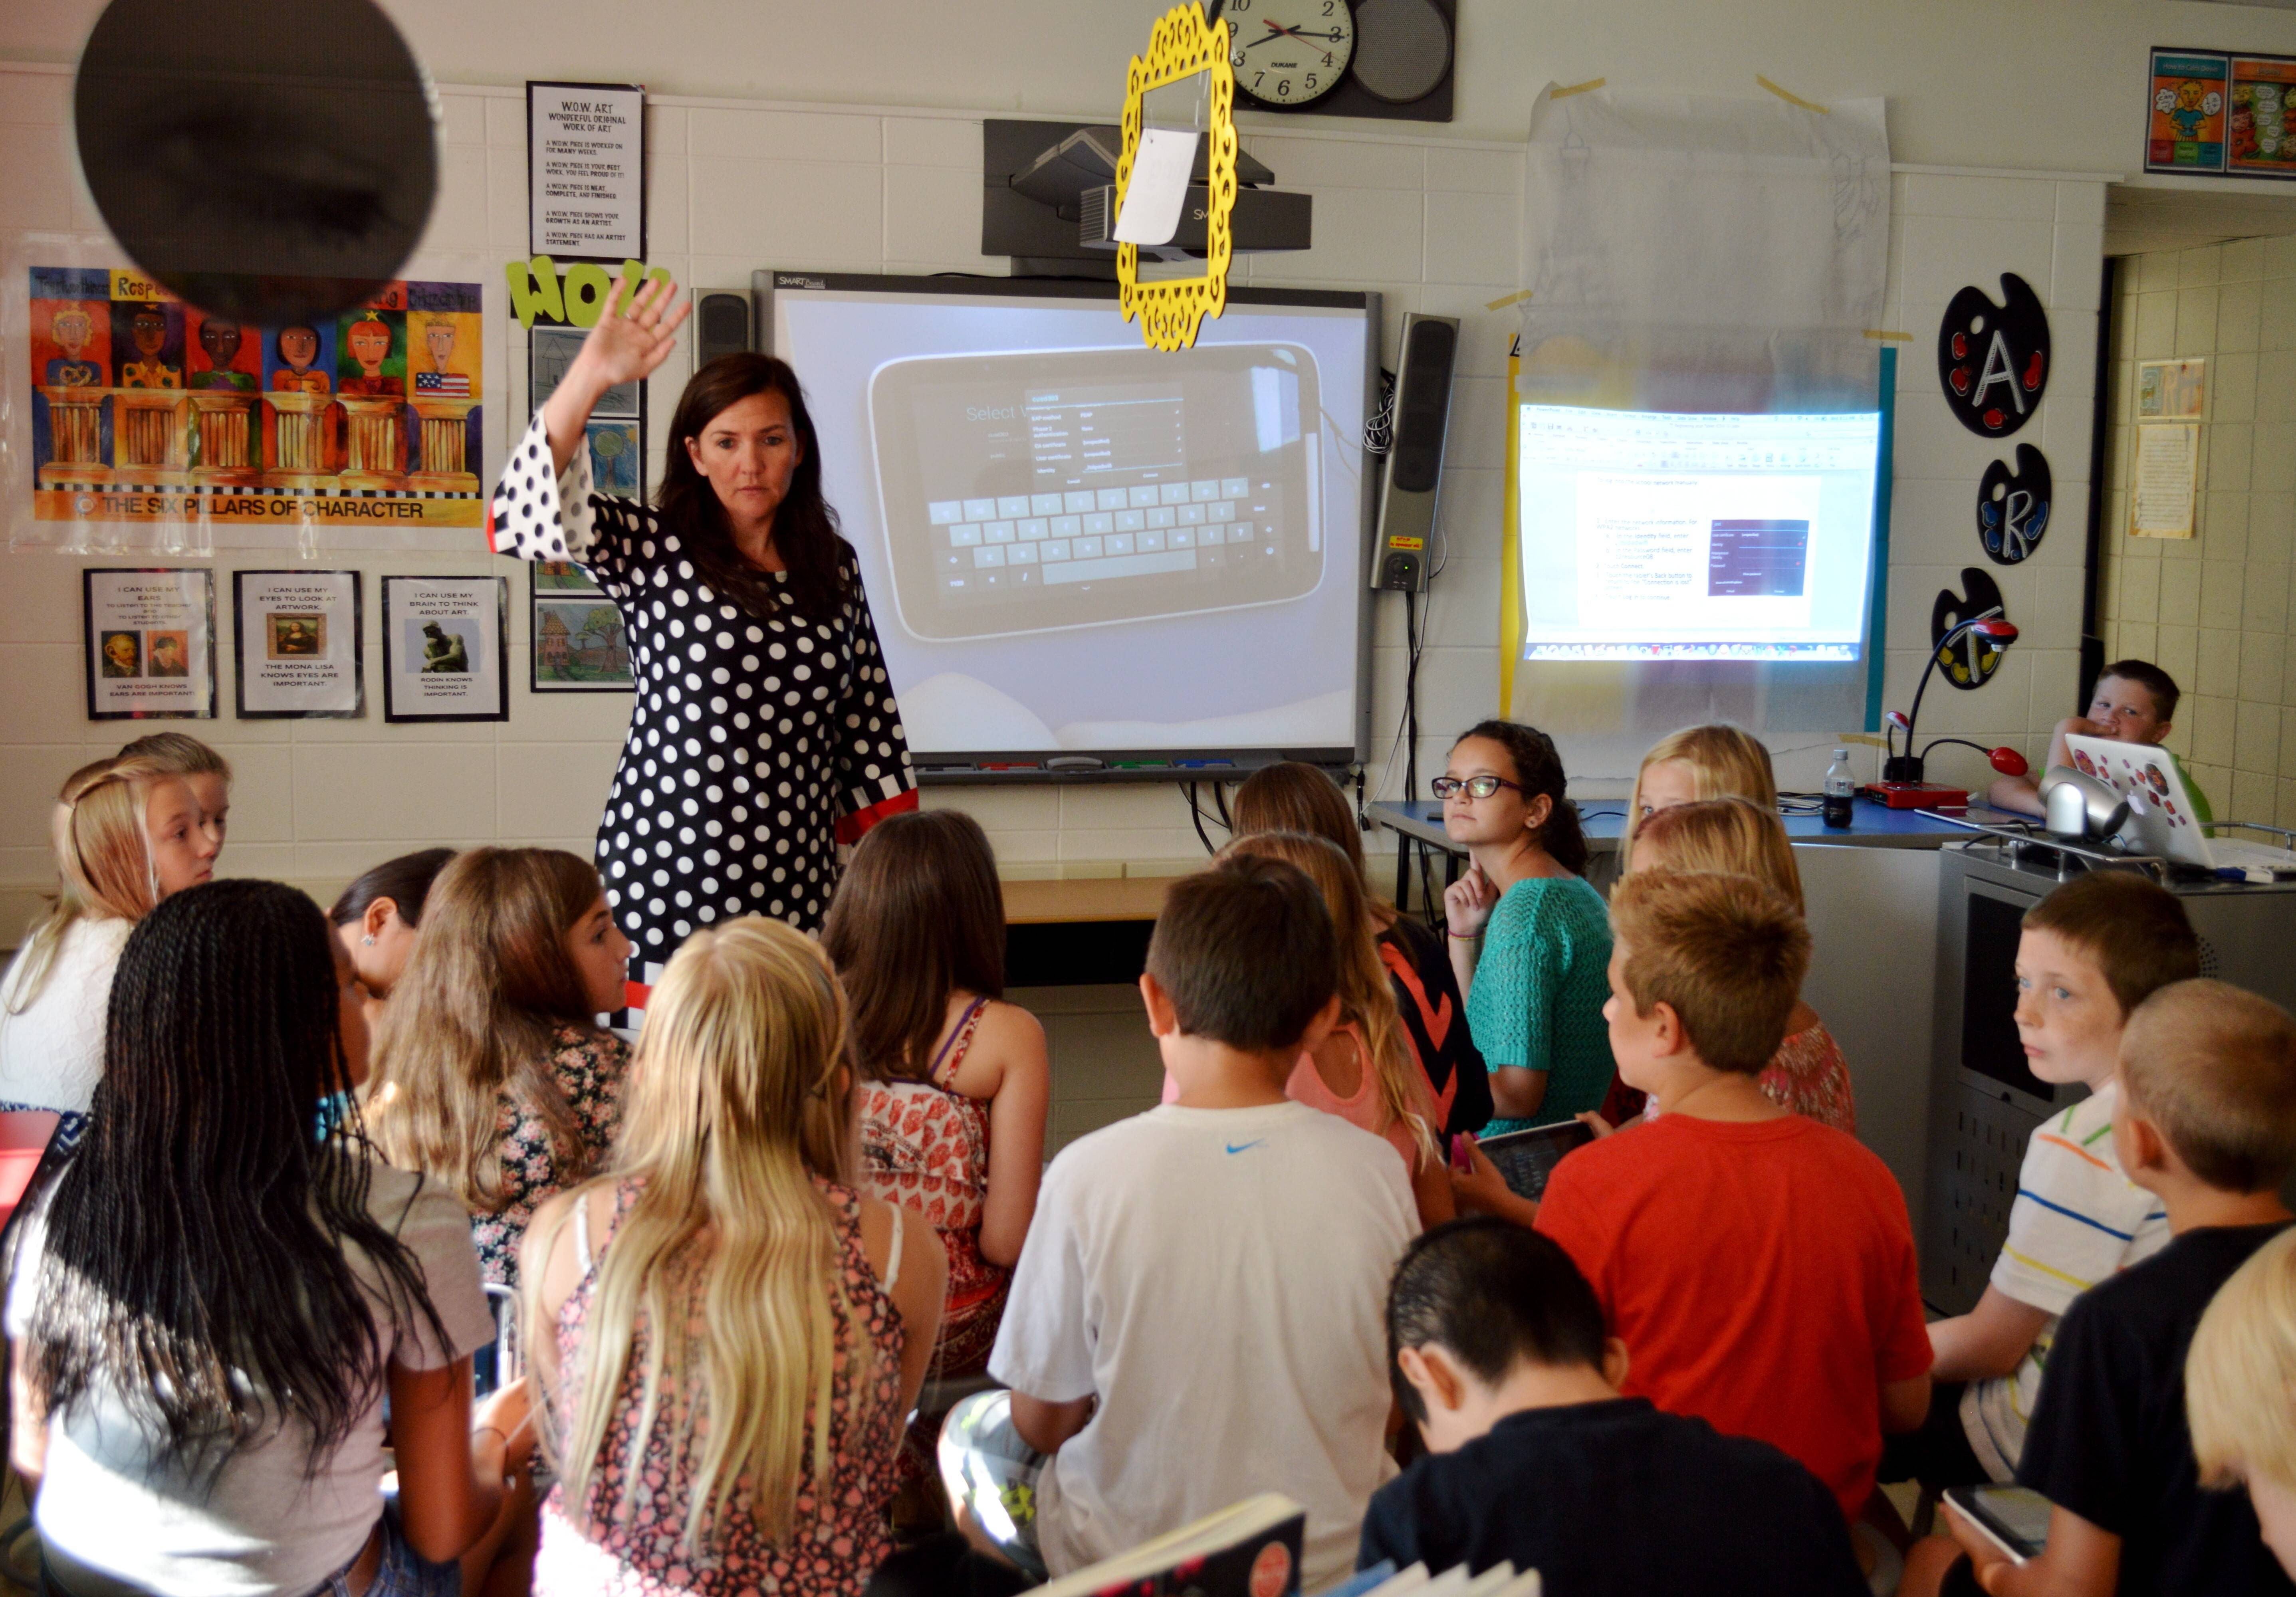 Richmond Intermediate Sci-Tech teacher Amy Dixon introduced students to a new piece of technology the St. Charles elementary schools are adopting this year. Each student at the school will receive a new tablet designed specifically for classroom use.